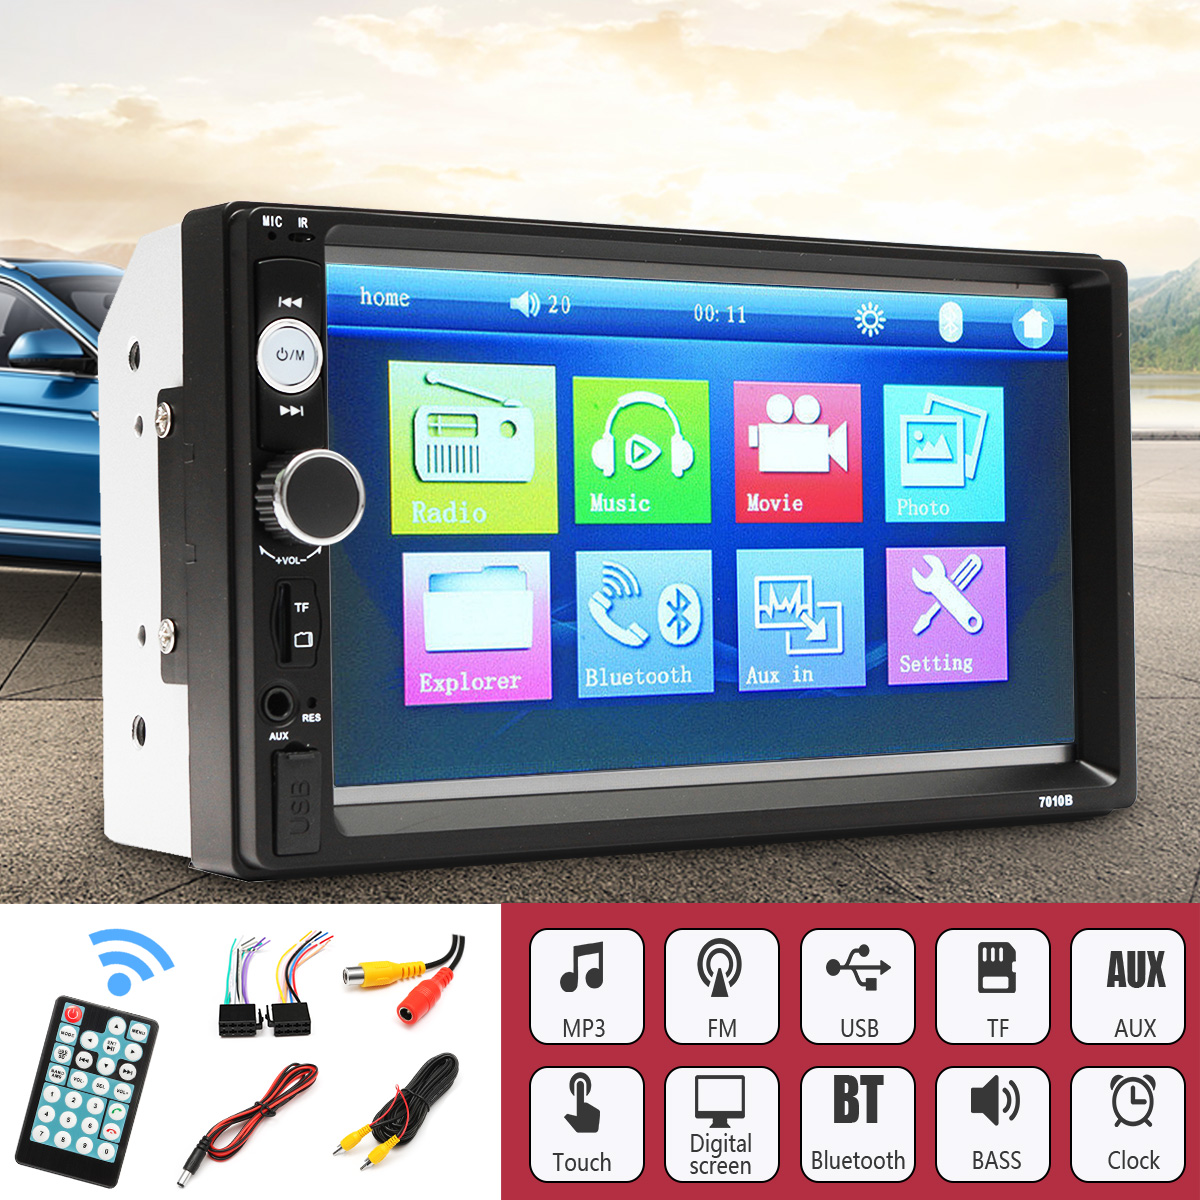 7010B Multimedia Player 2 Din Car Video Player Audio Stereo DVD 7 inch Bluetooth FM Radio Car MP5 Player with 720P Backup Camera professional 6 2 inch 6201a audio dvd sb sd bluetooth 2 din car cd player with automatic memory play car dvd player